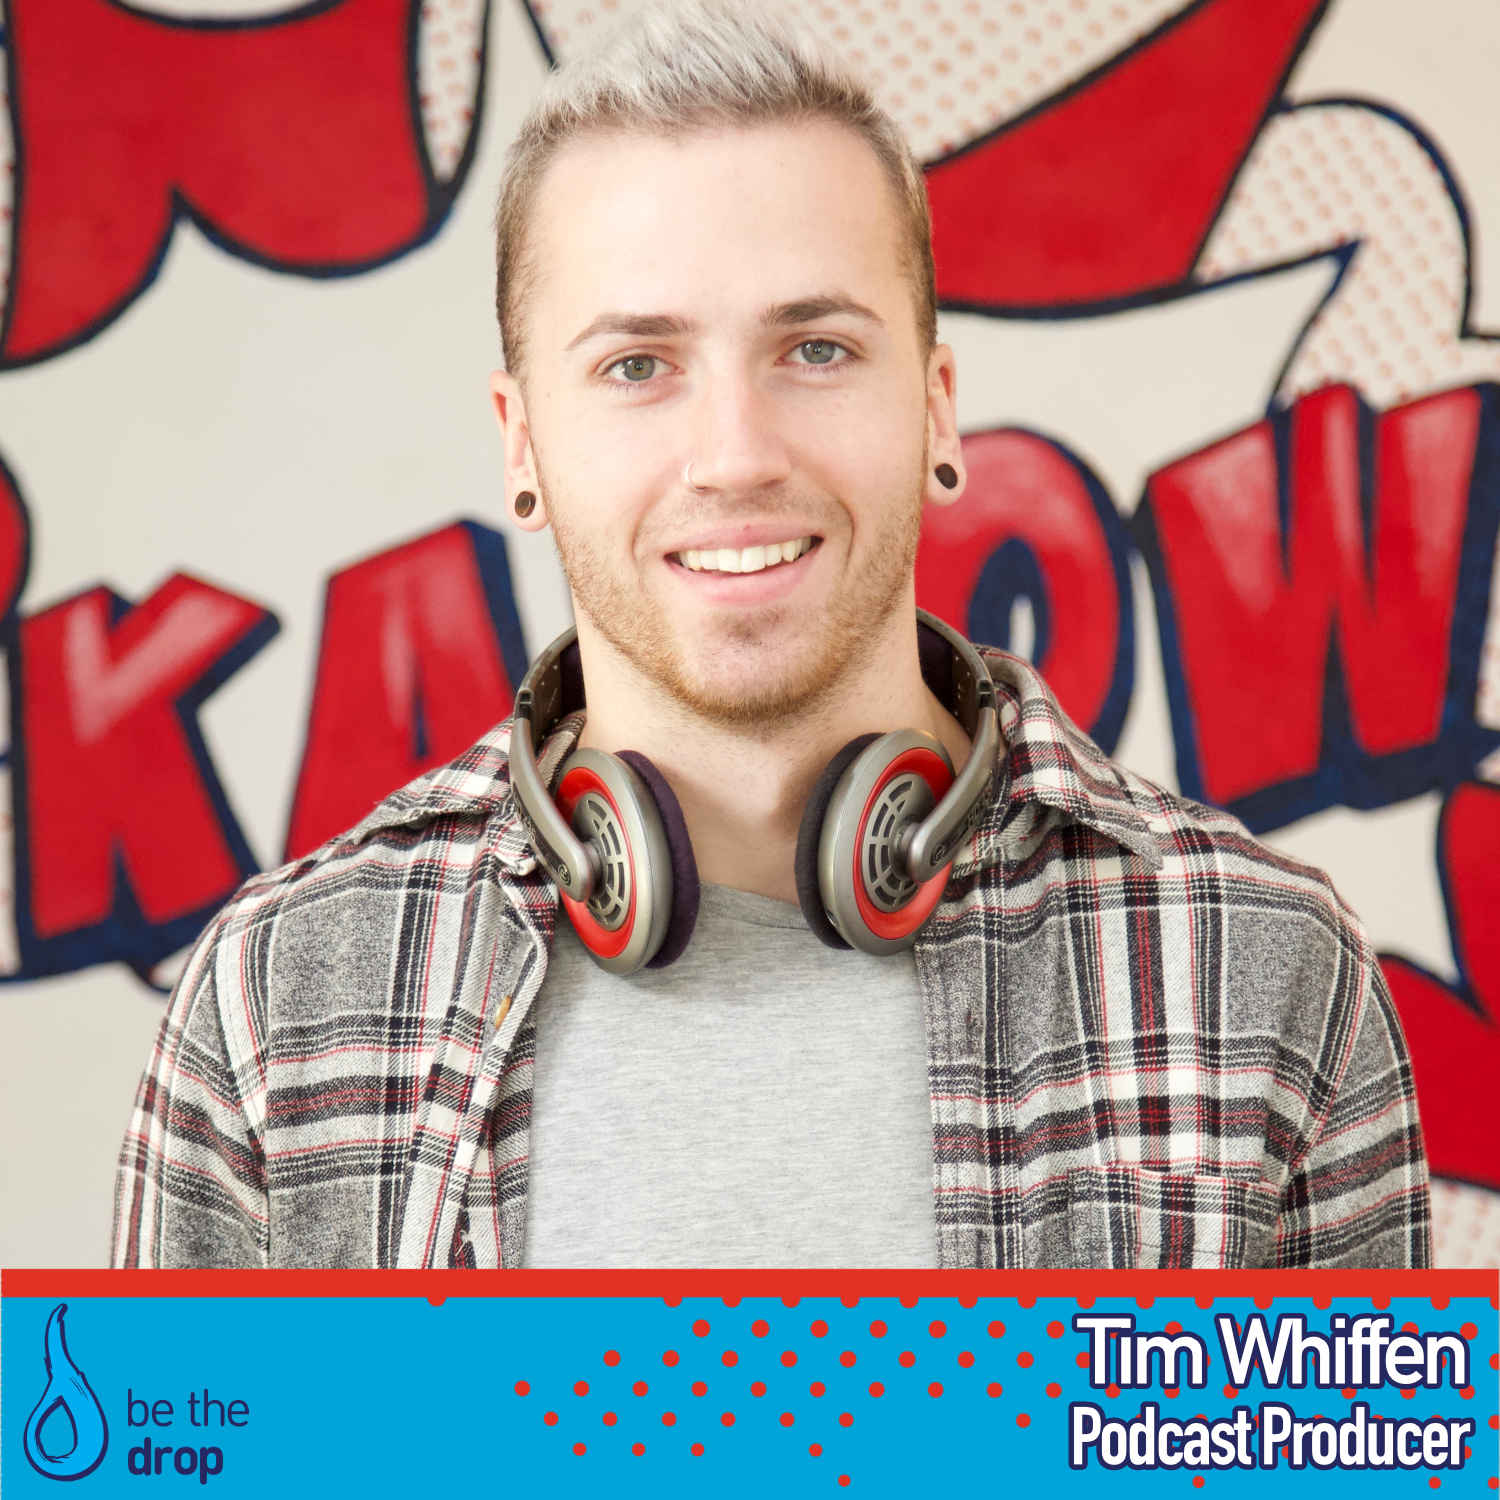 Rise Of Podcasts: On-Demand Content With Tim Whiffen [Podcast]